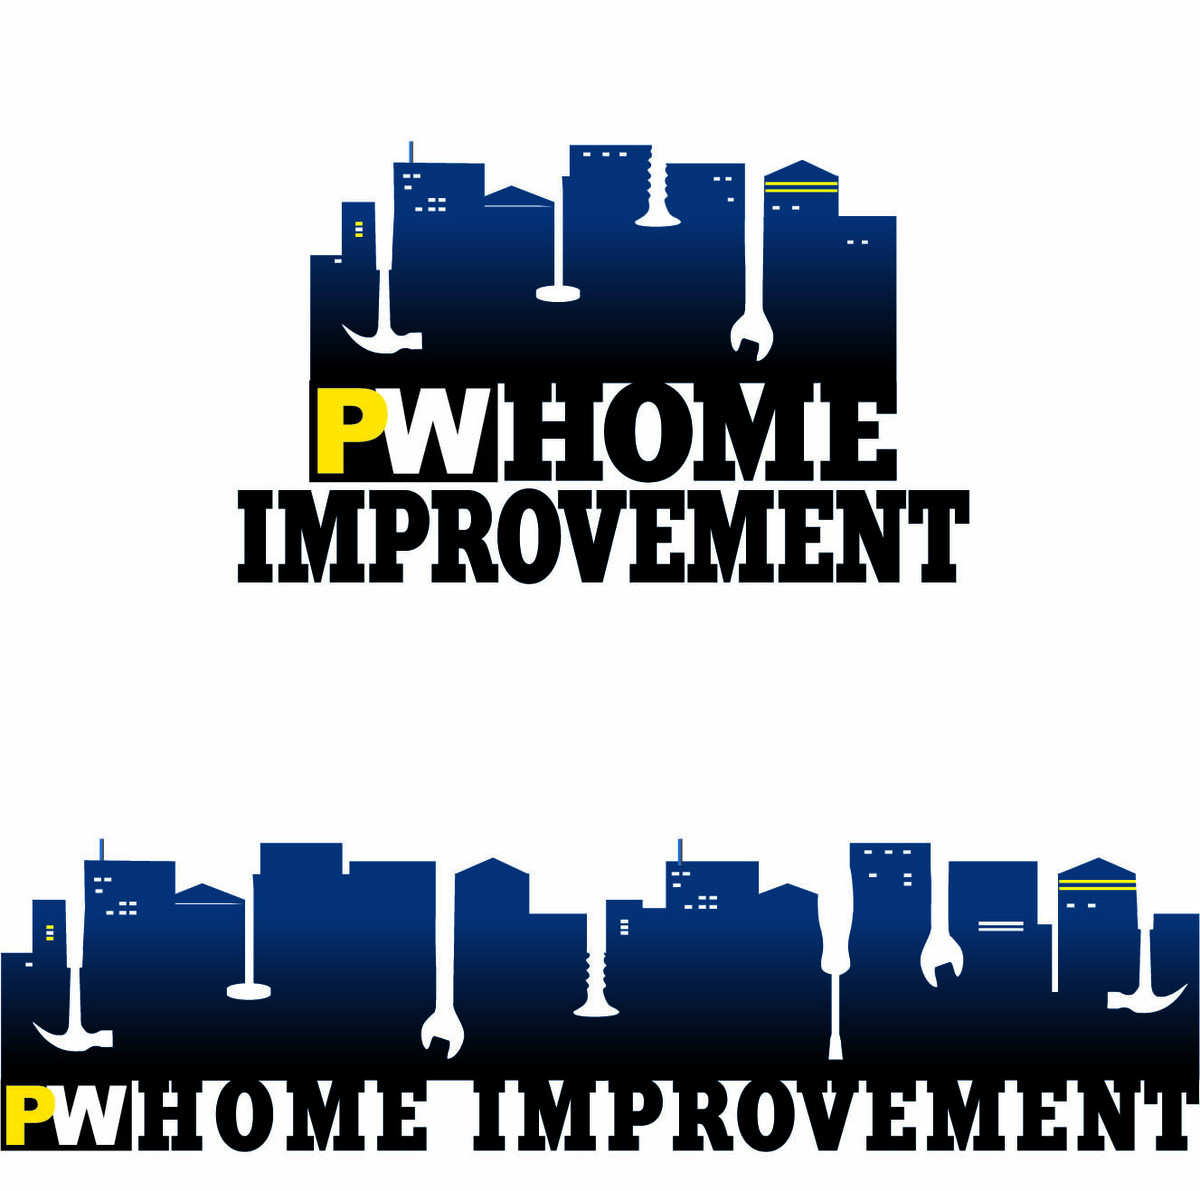 Home improvement logo design dionna gary archinect - Home improvement design ...